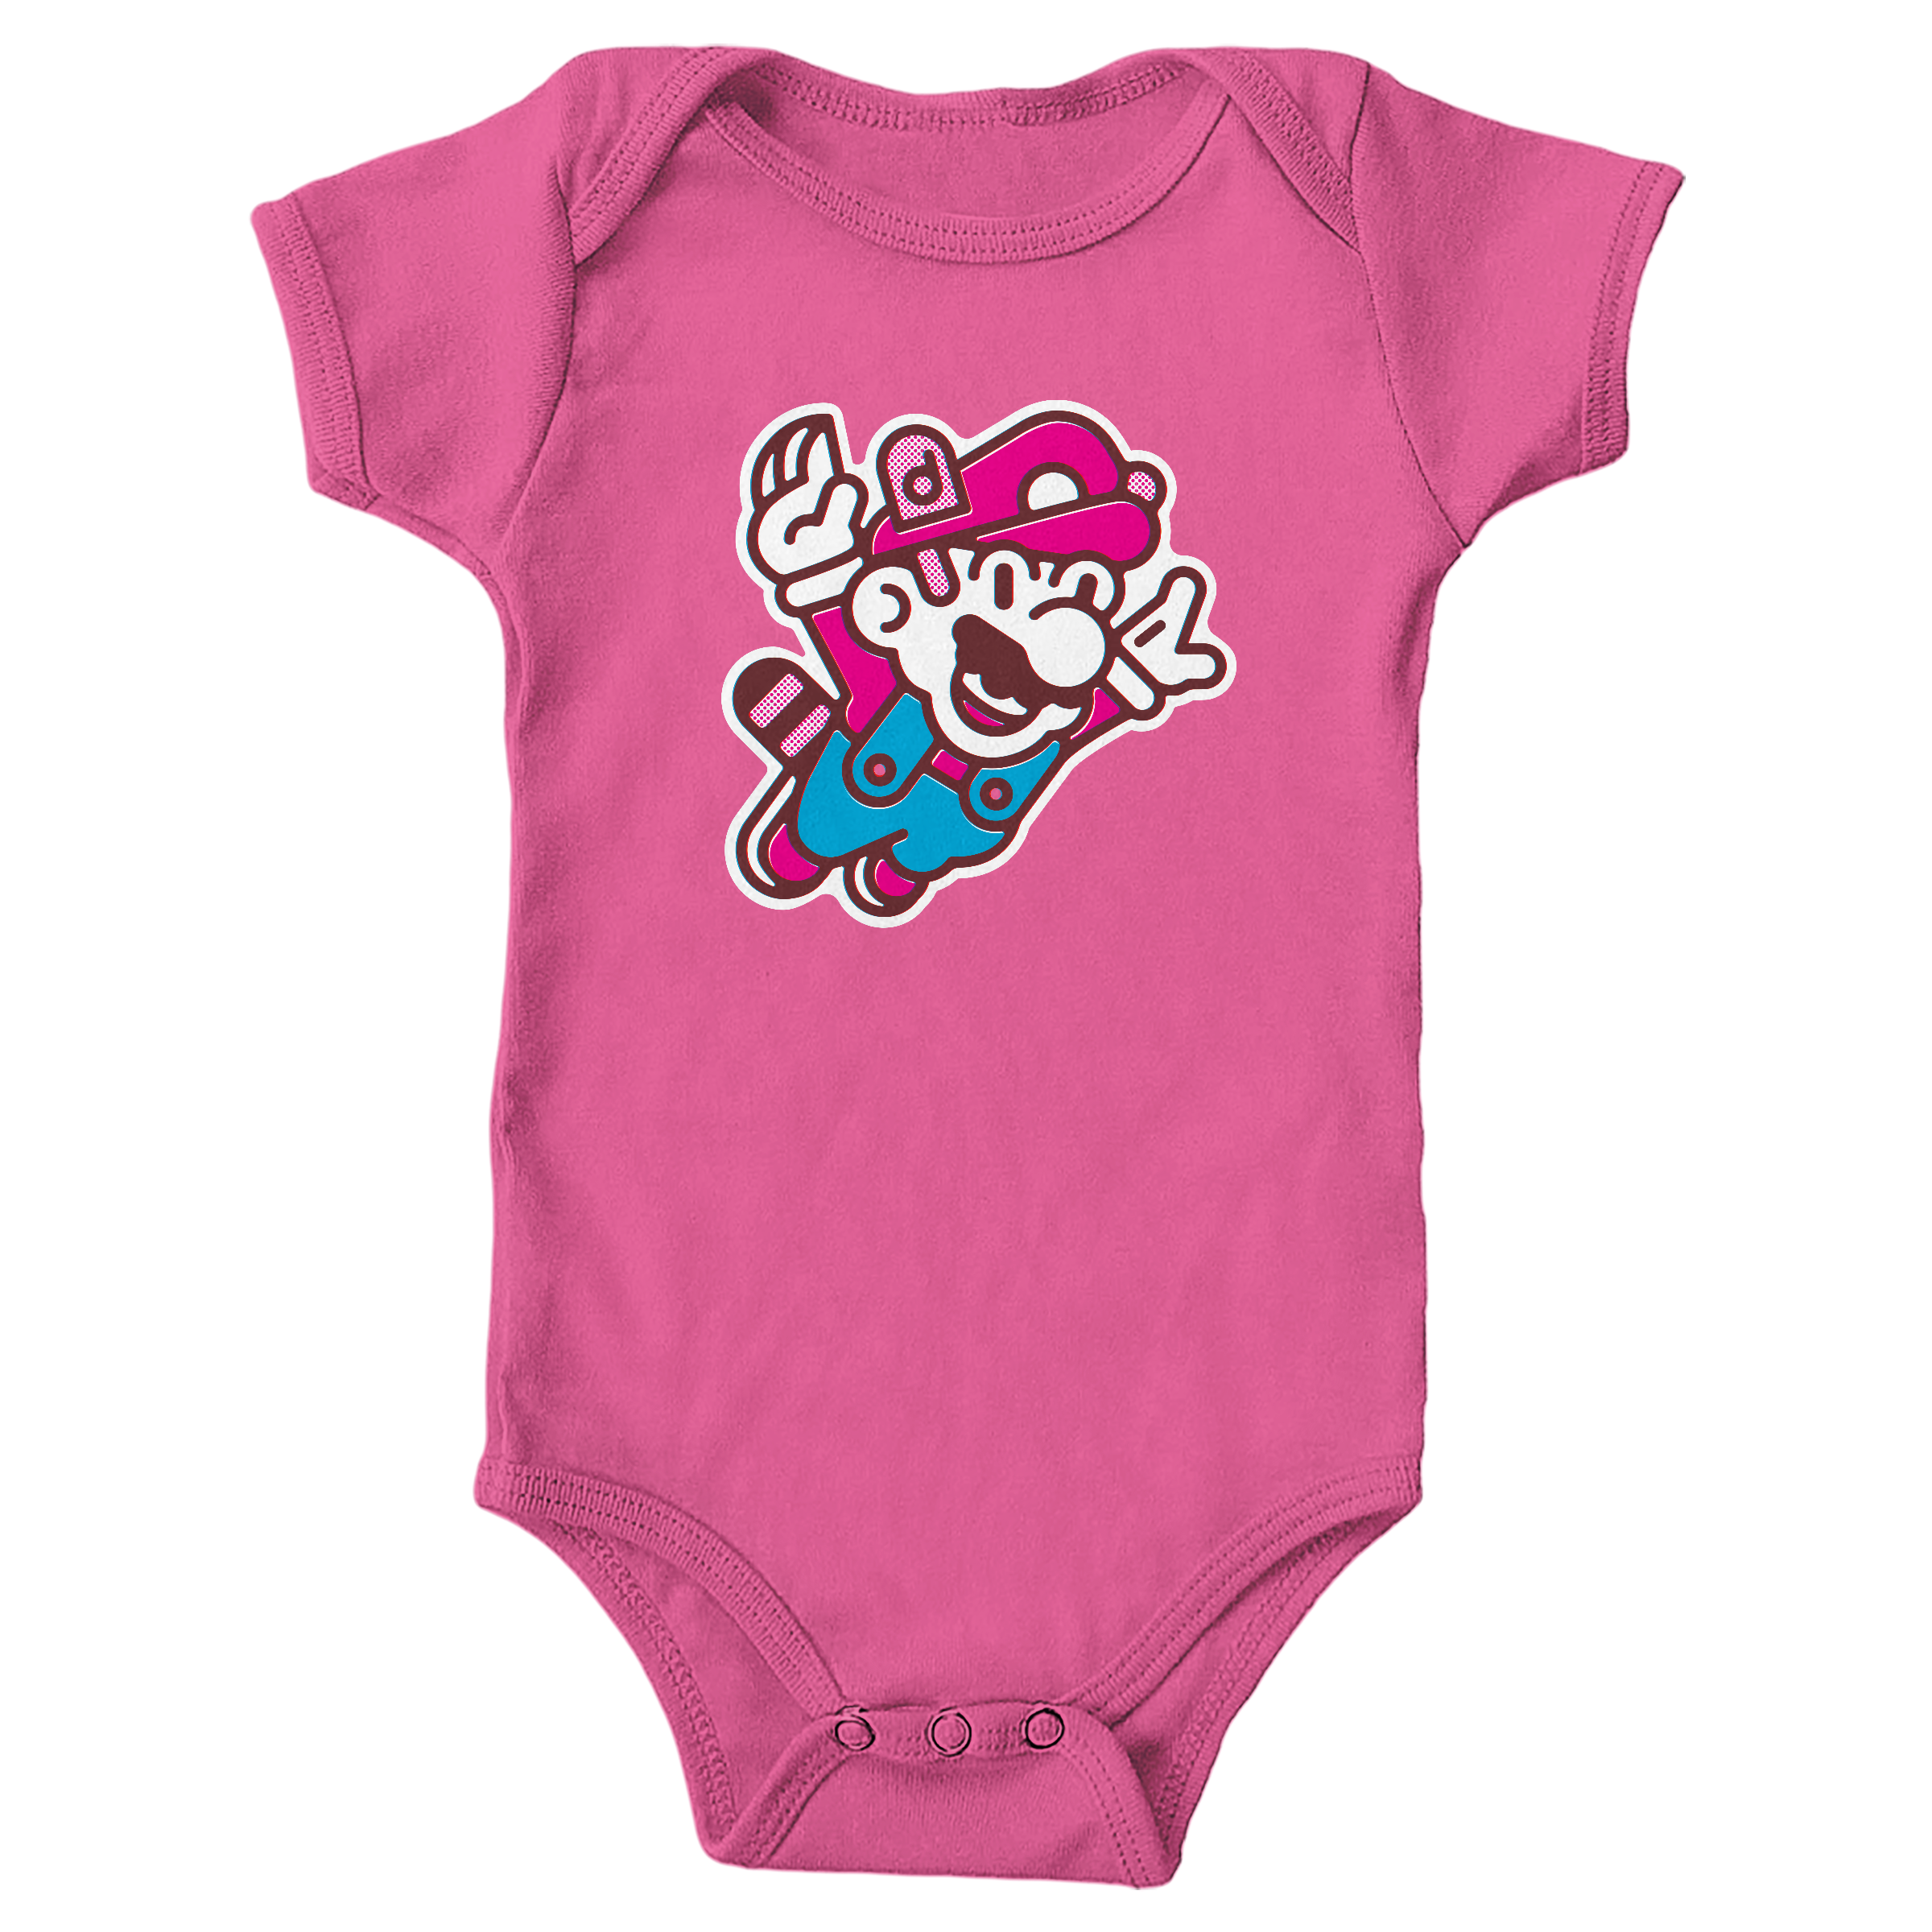 Super Mario Bros. 3 Hot Pink (Onesie)